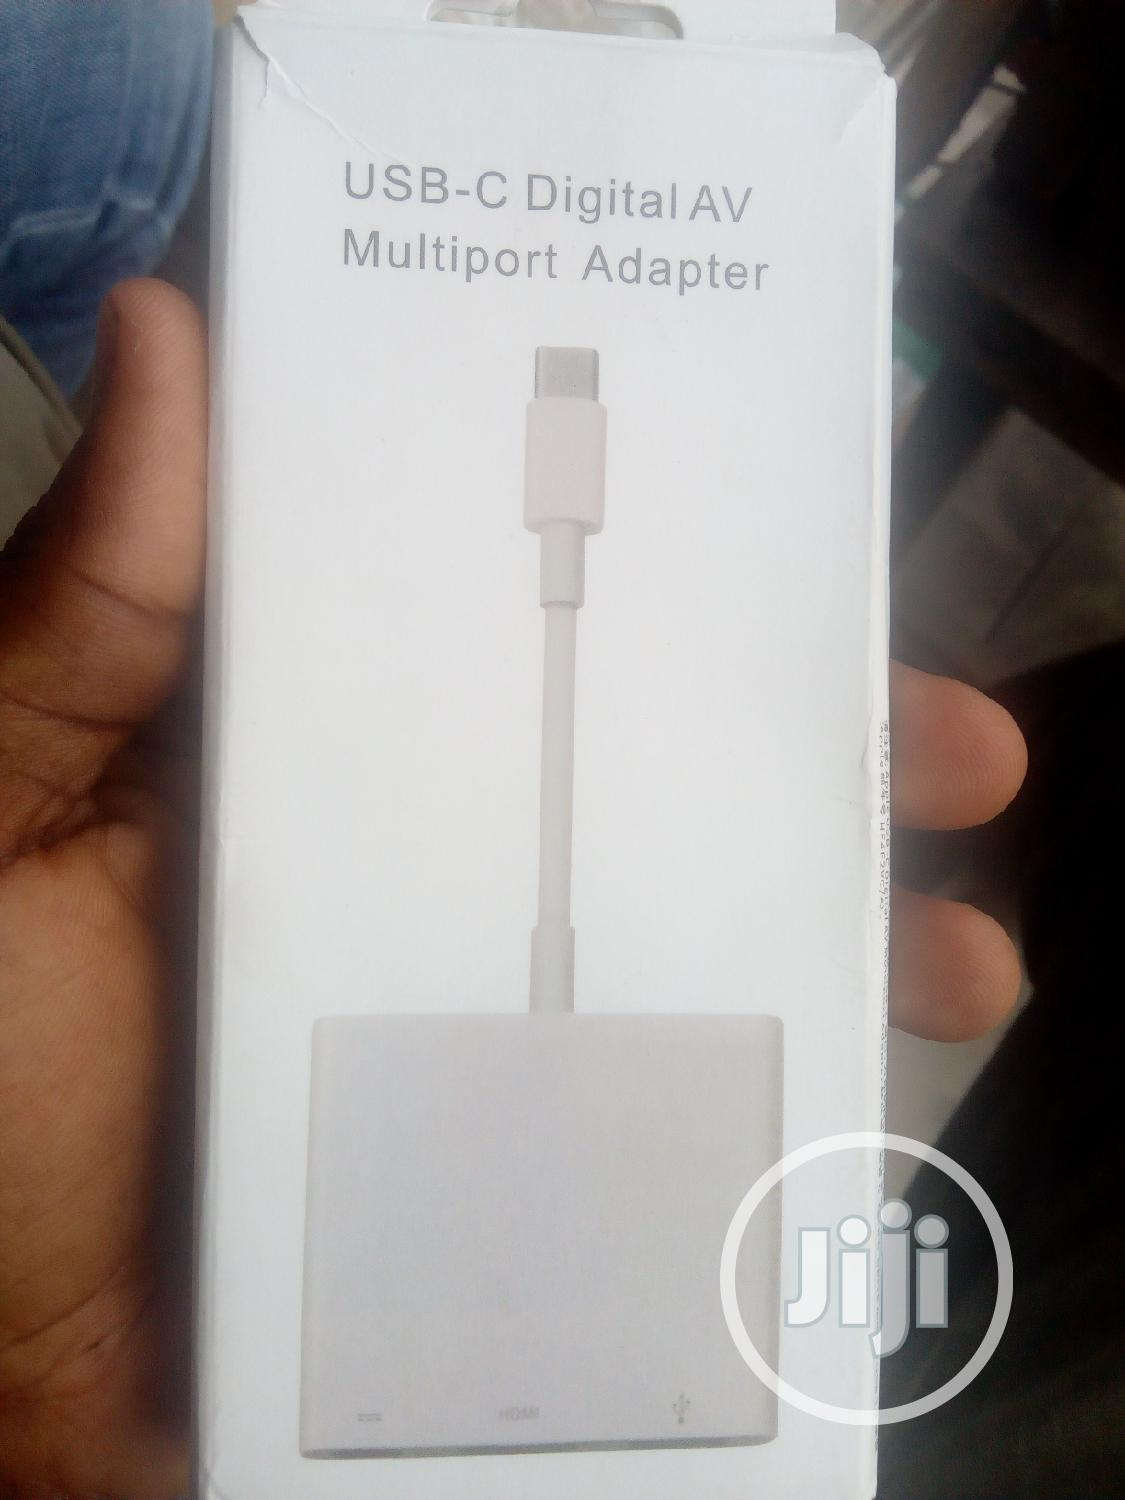 USB C Digital AV Multiport Adapter